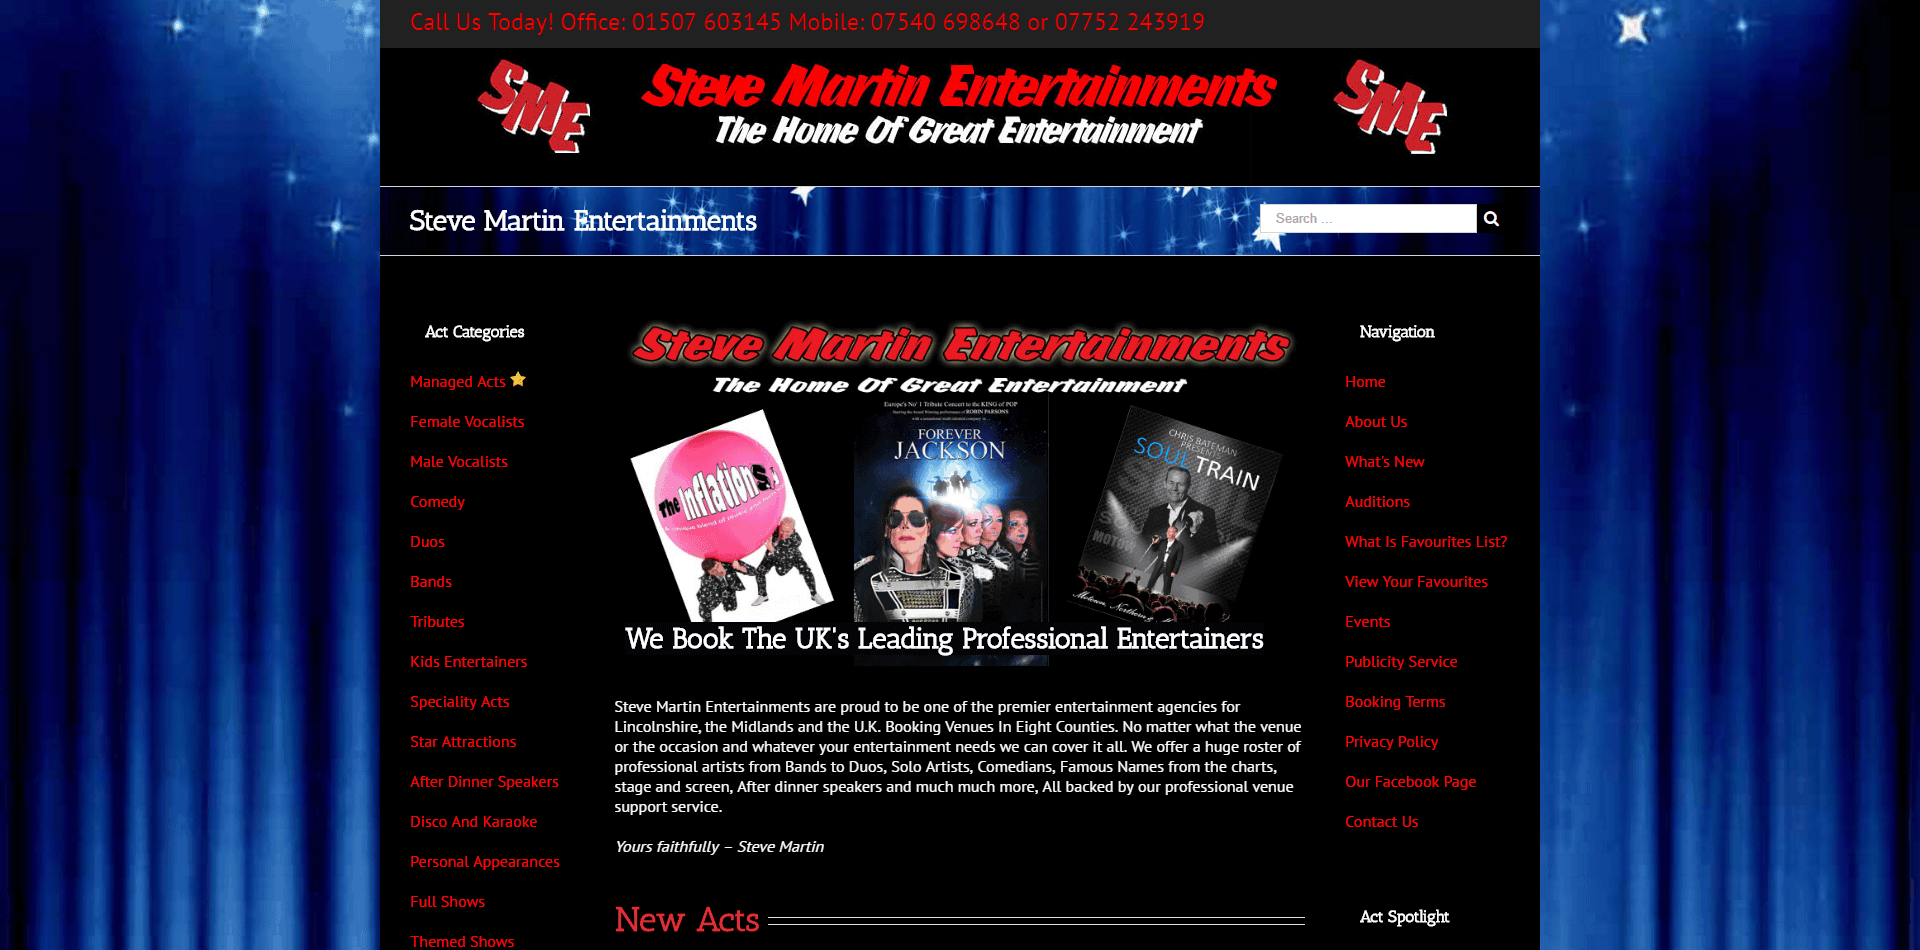 steve martin entertainments screen shot